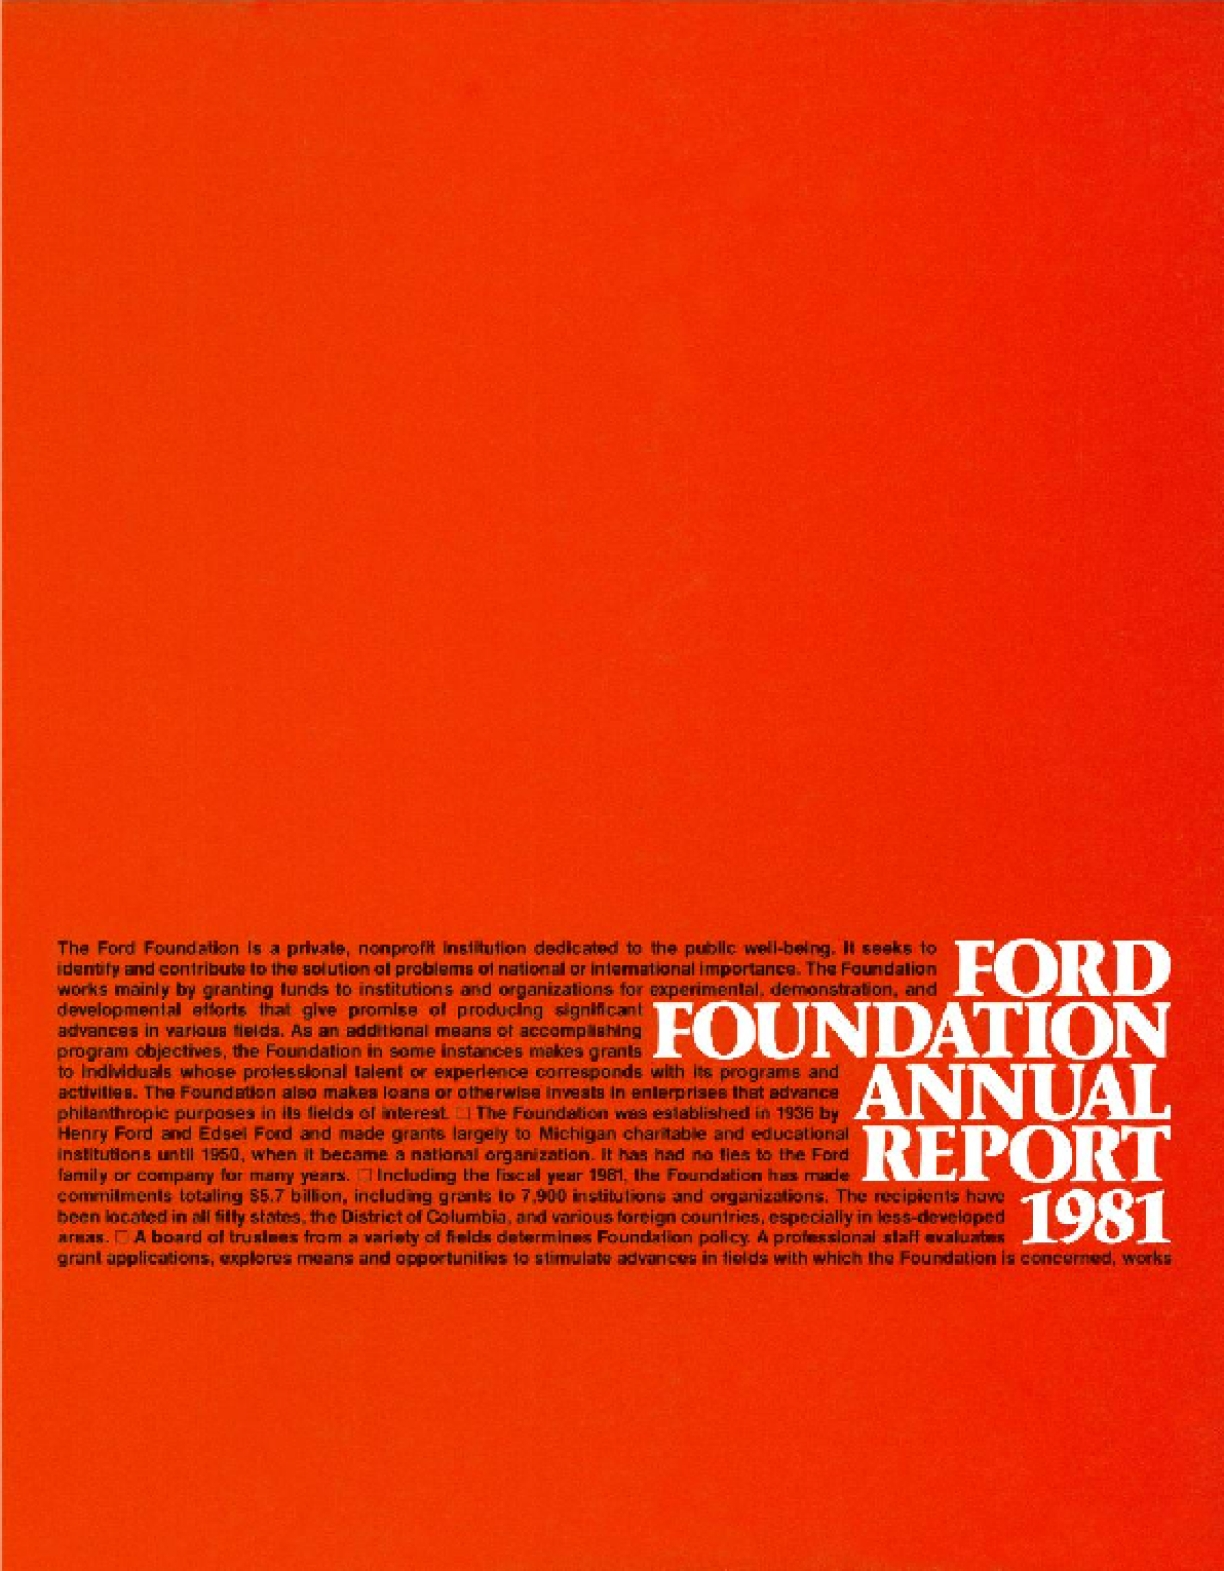 Ford Foundation - 1981 Annual Report